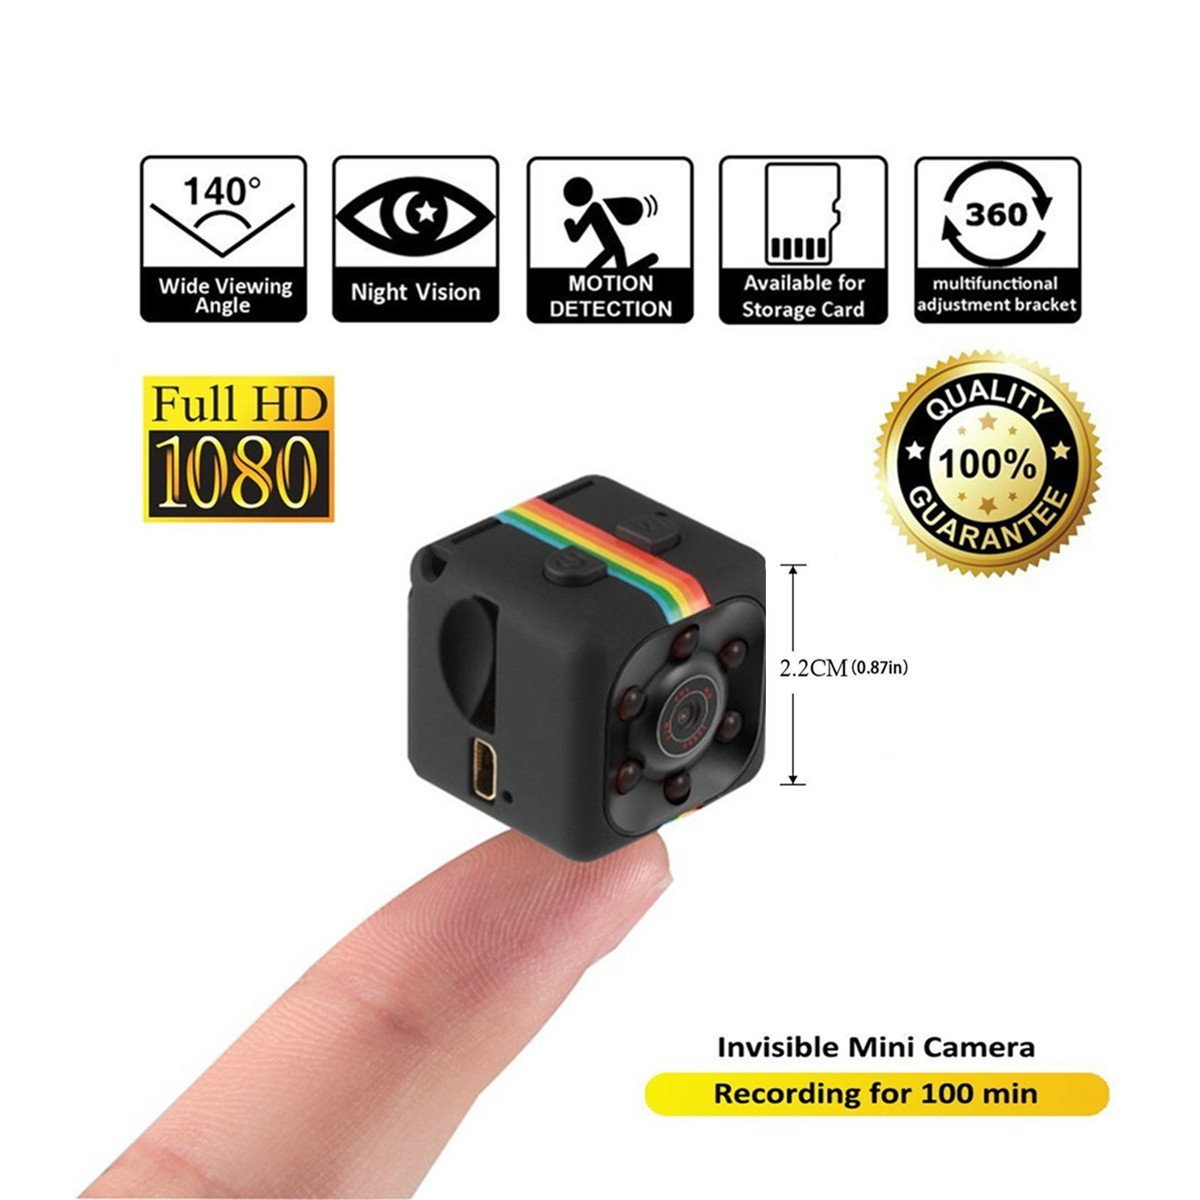 SQ11 Mini Camera 1080P Sport DV Mini Infrared Night Vision Monitor Concealed small Camera SQ 11 small camera DV Video Recorder ep5 20pcs lot mini dv headphone sport camera bluetooth headset video recorder run ride video camera listen to music